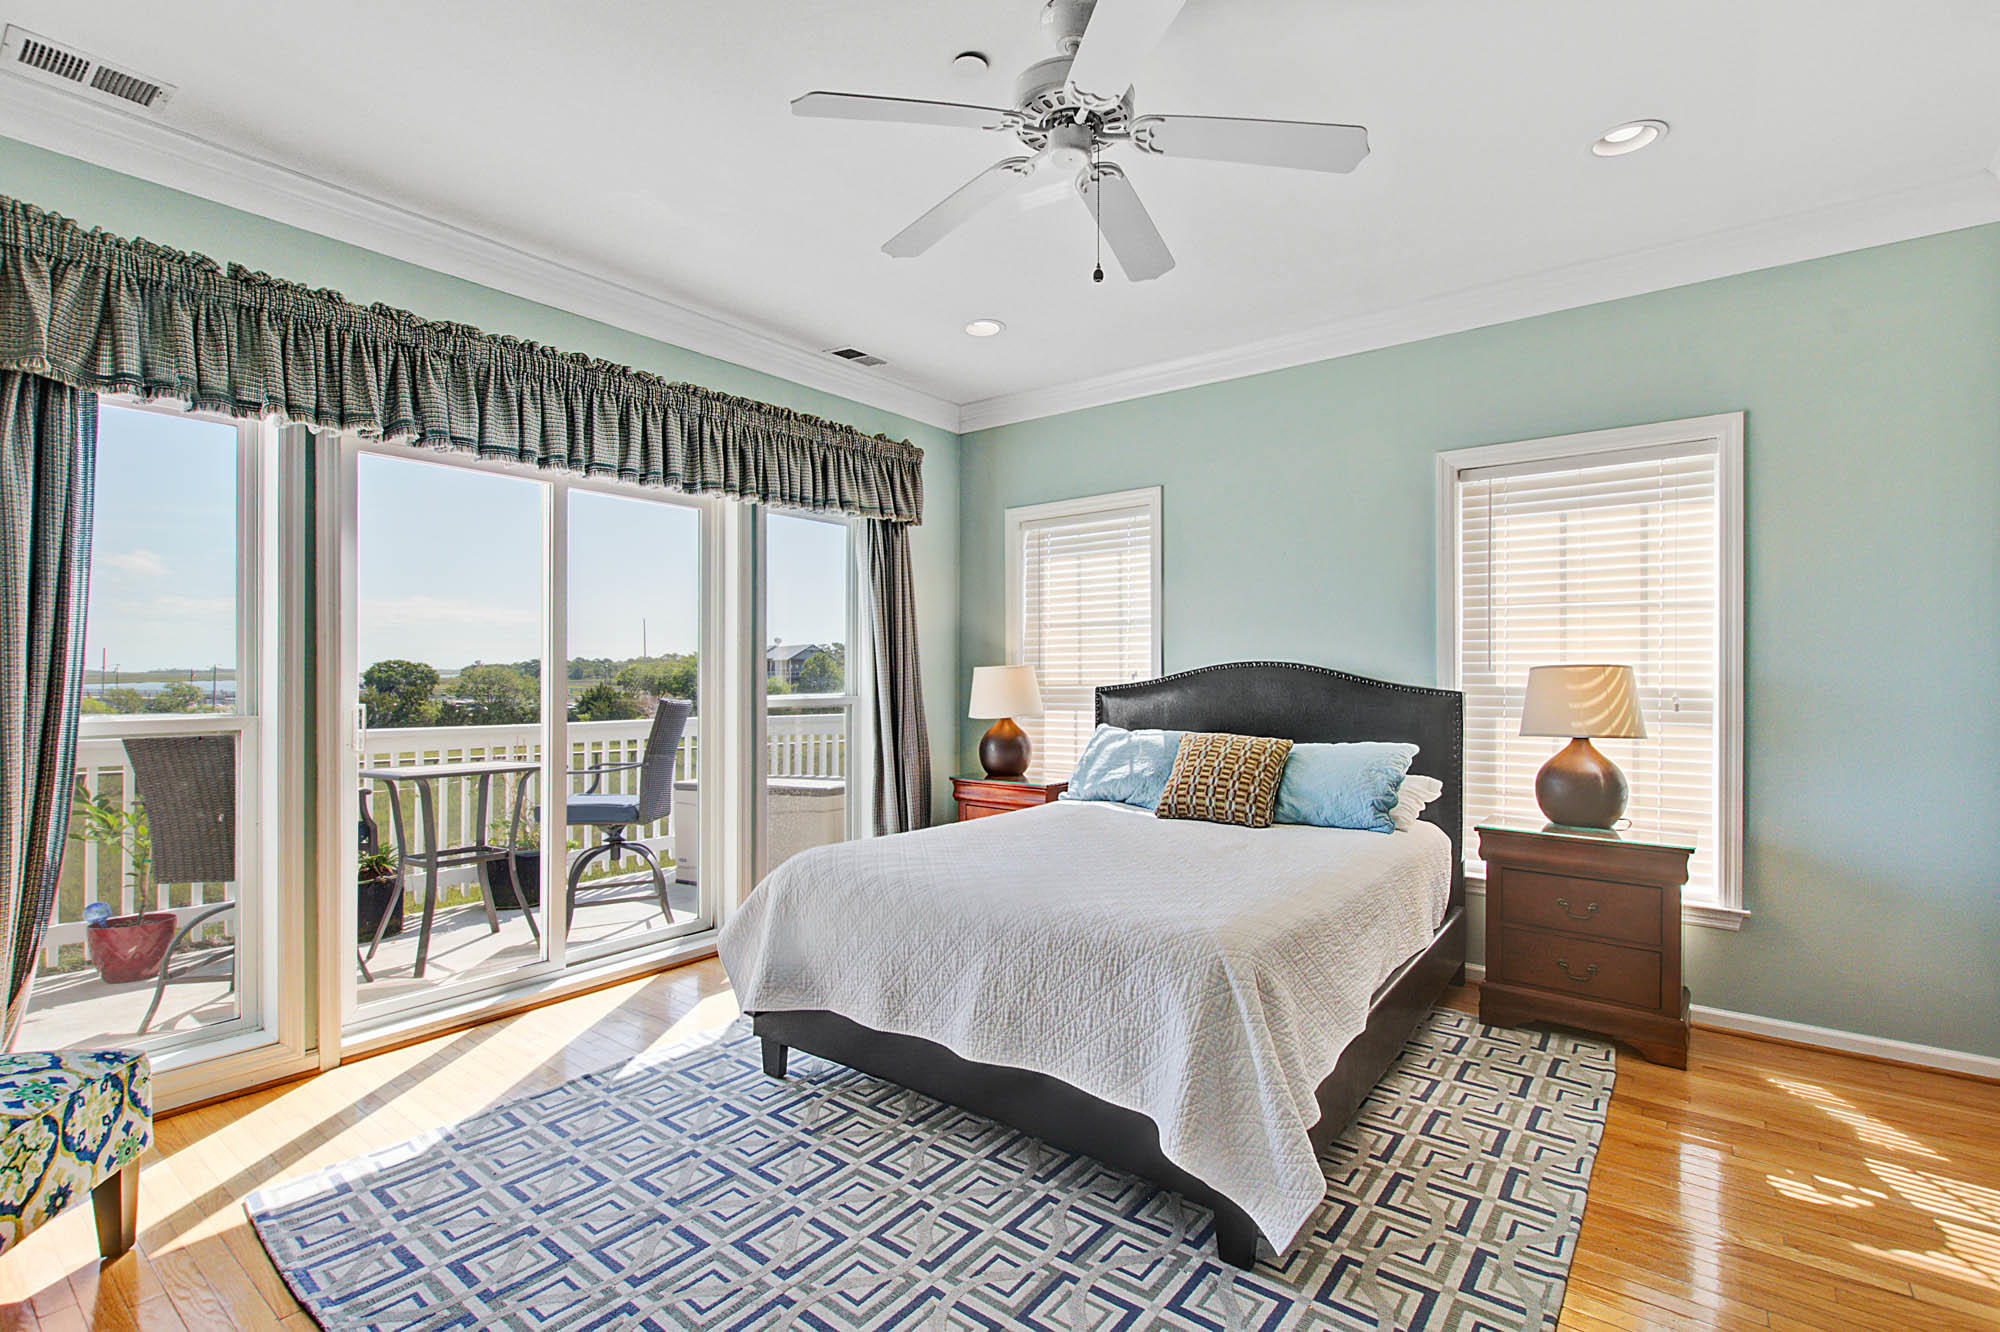 Waters Edge Homes For Sale - 104 2nd, Folly Beach, SC - 16